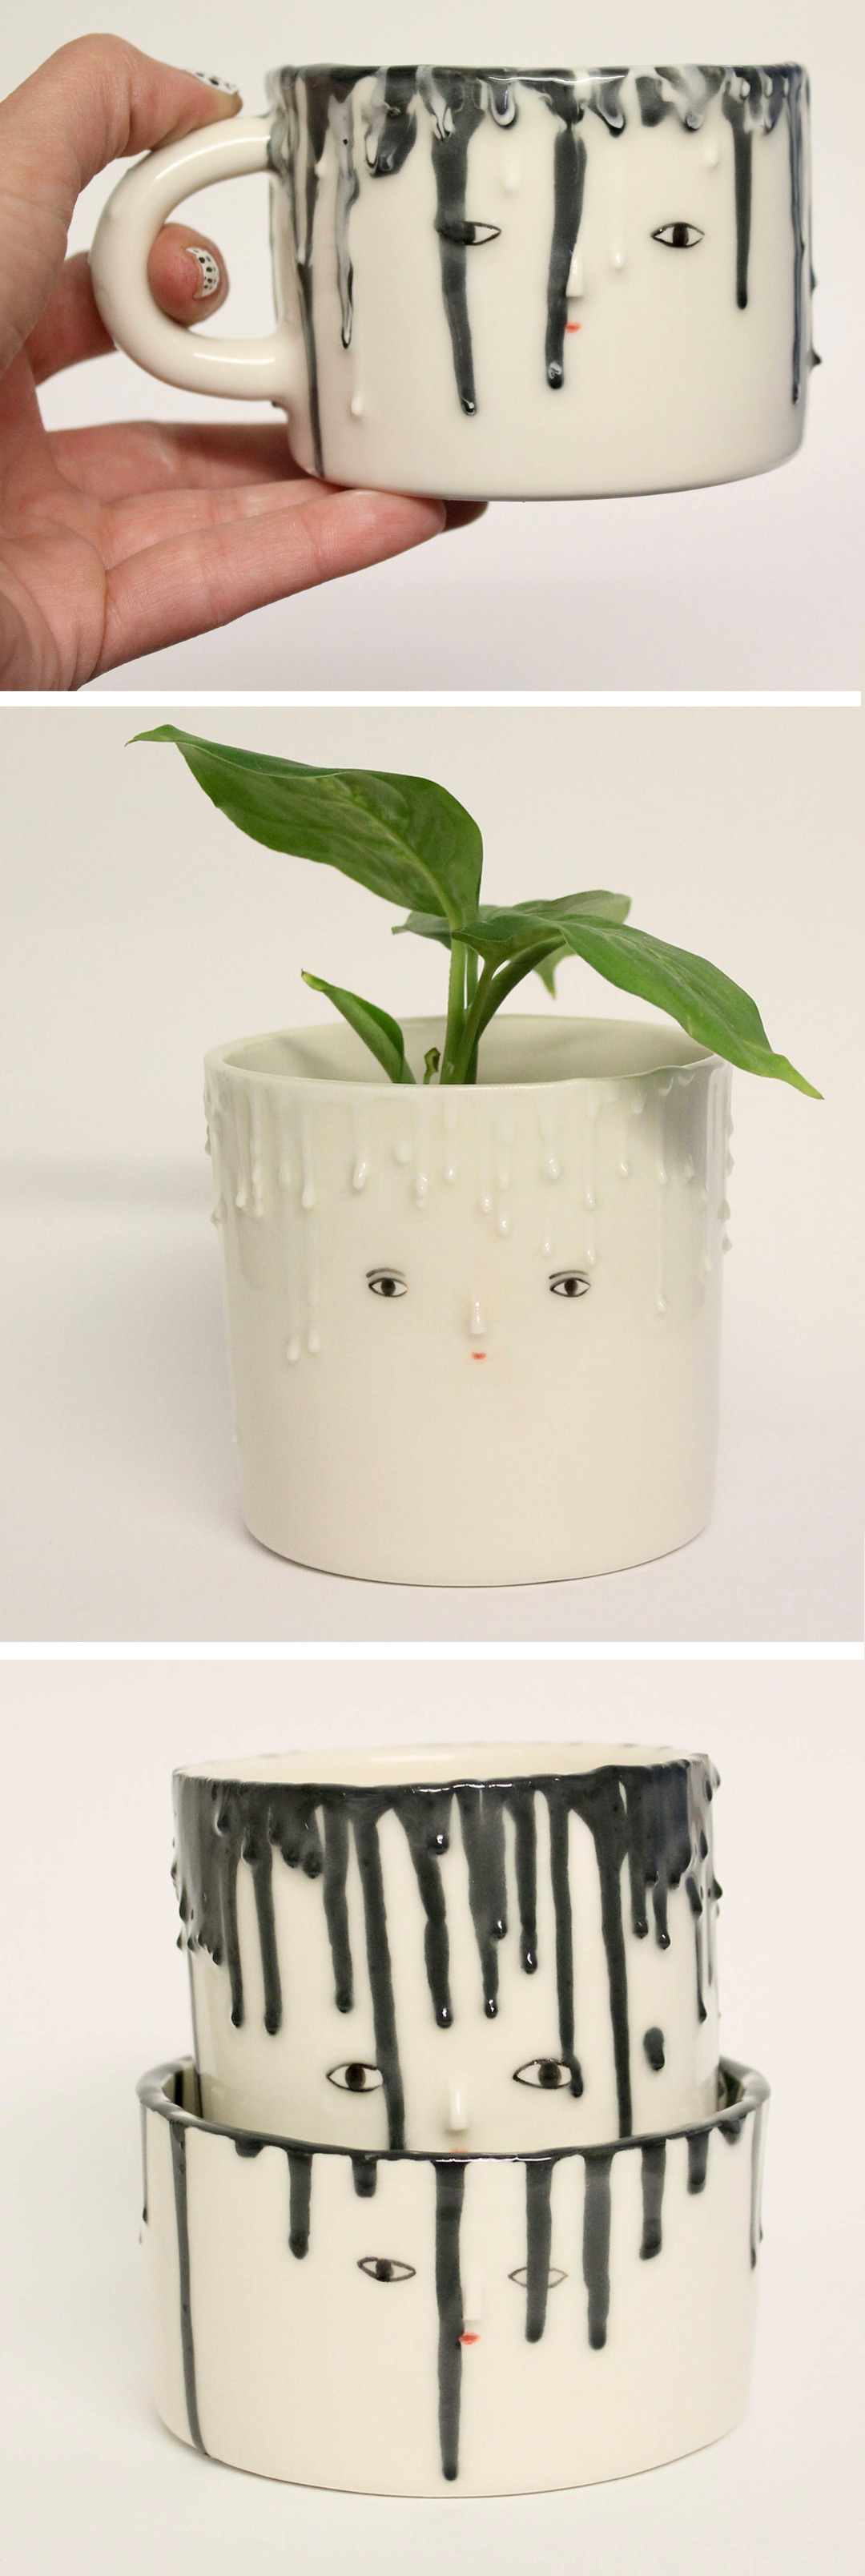 Drip planter by Kinska